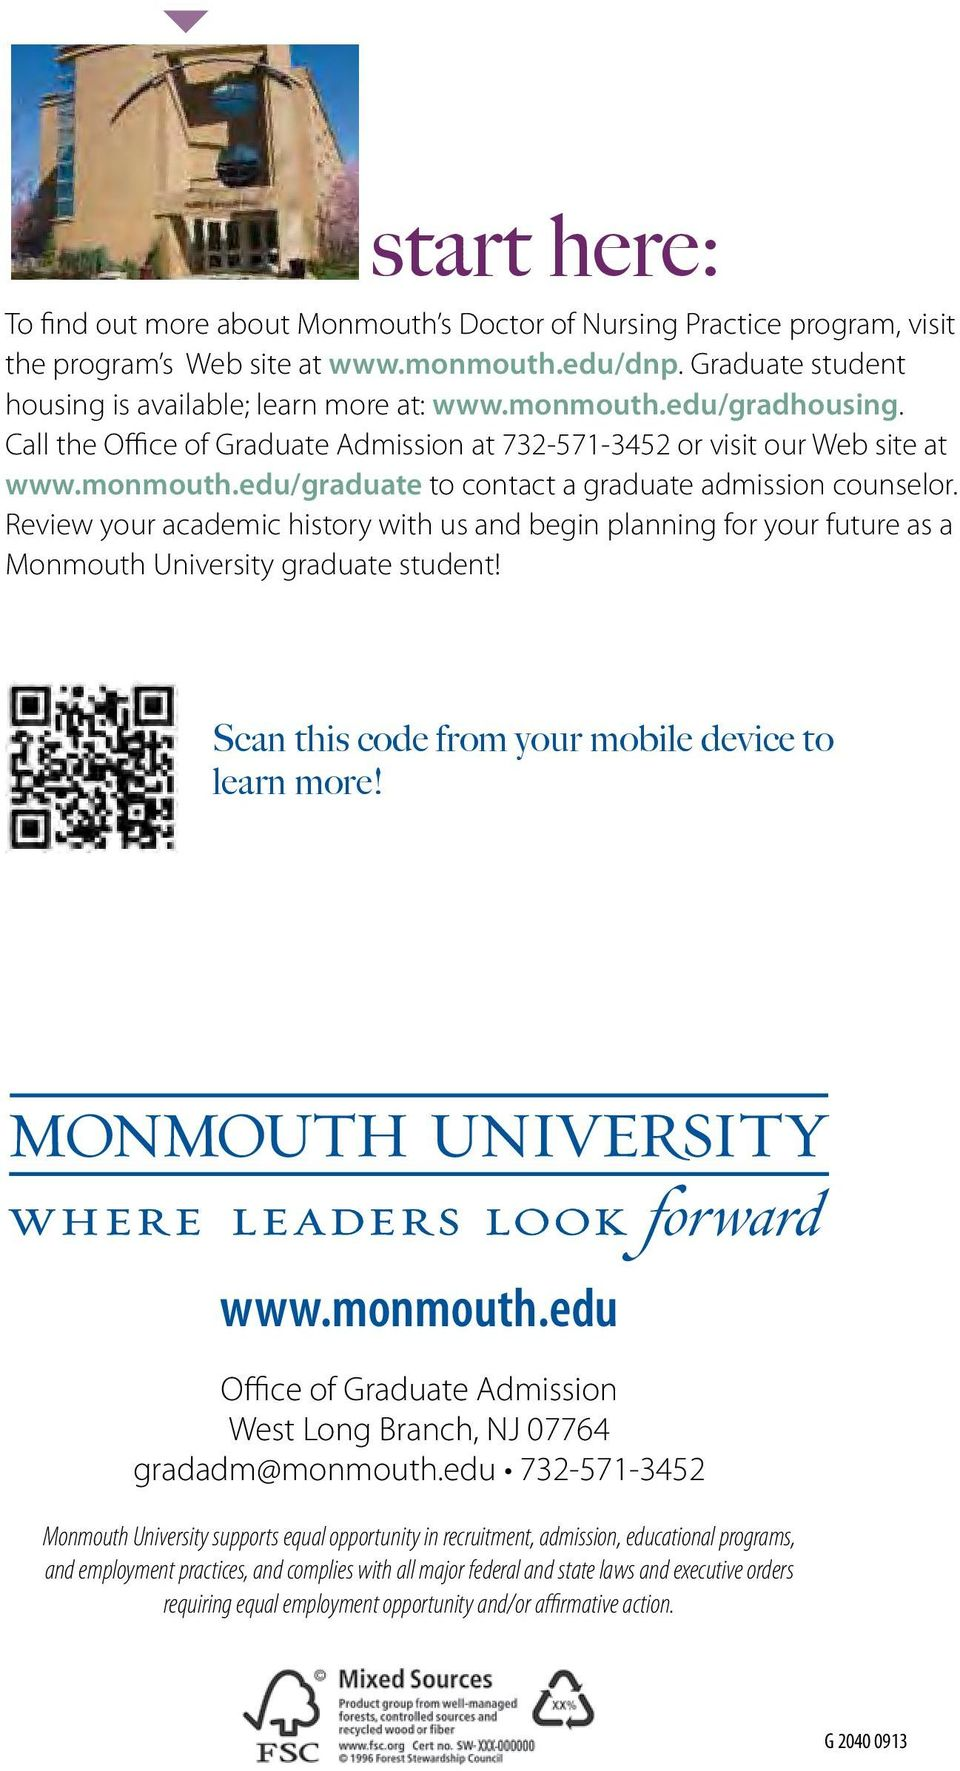 Review your academic history with us and begin planning for your future as a Monmouth University graduate student! Scan this code from your mobile device to learn more! www.monmouth.